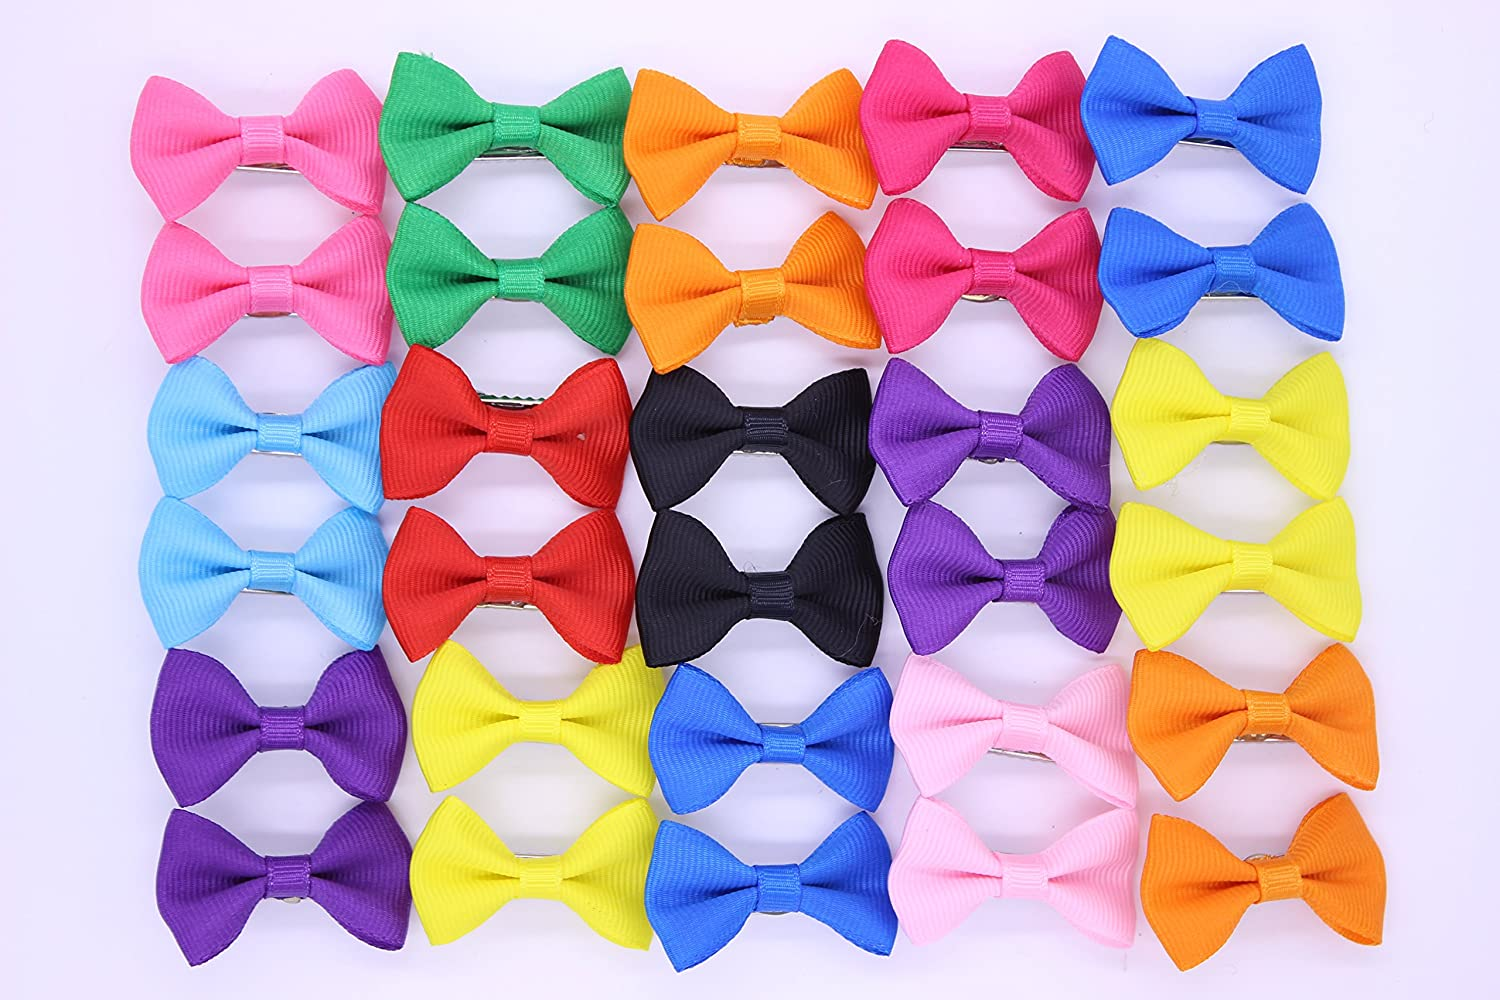 New Dog 10pairs/20pcs Hair Clips Bowknot Small Pet Grooming Products Colors Solid Mix Pet Dog Pattern Hair Bows Accessories